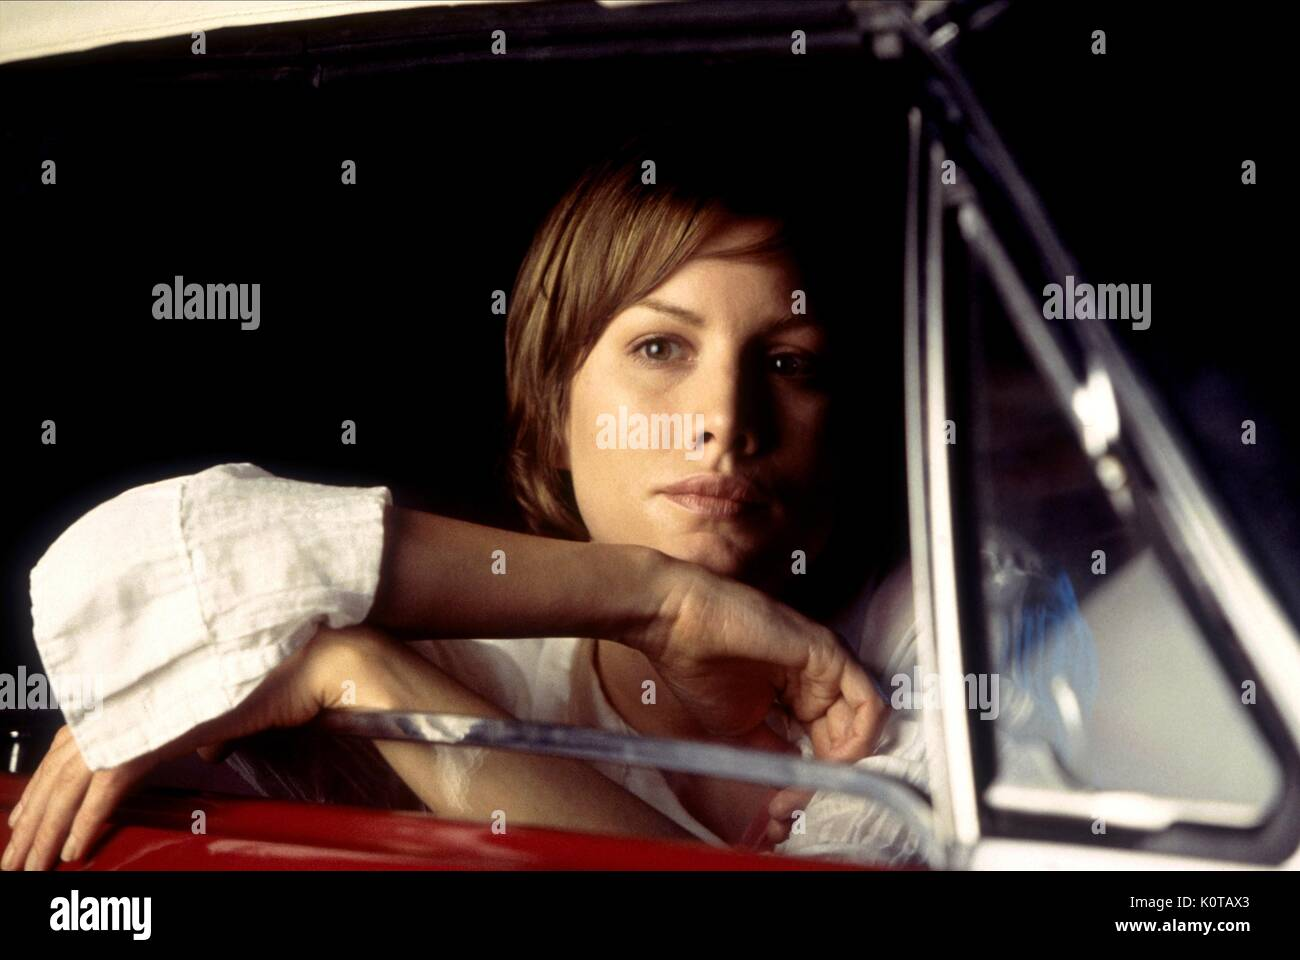 ALICE EVANS FASCINATION (2004) - Stock Image